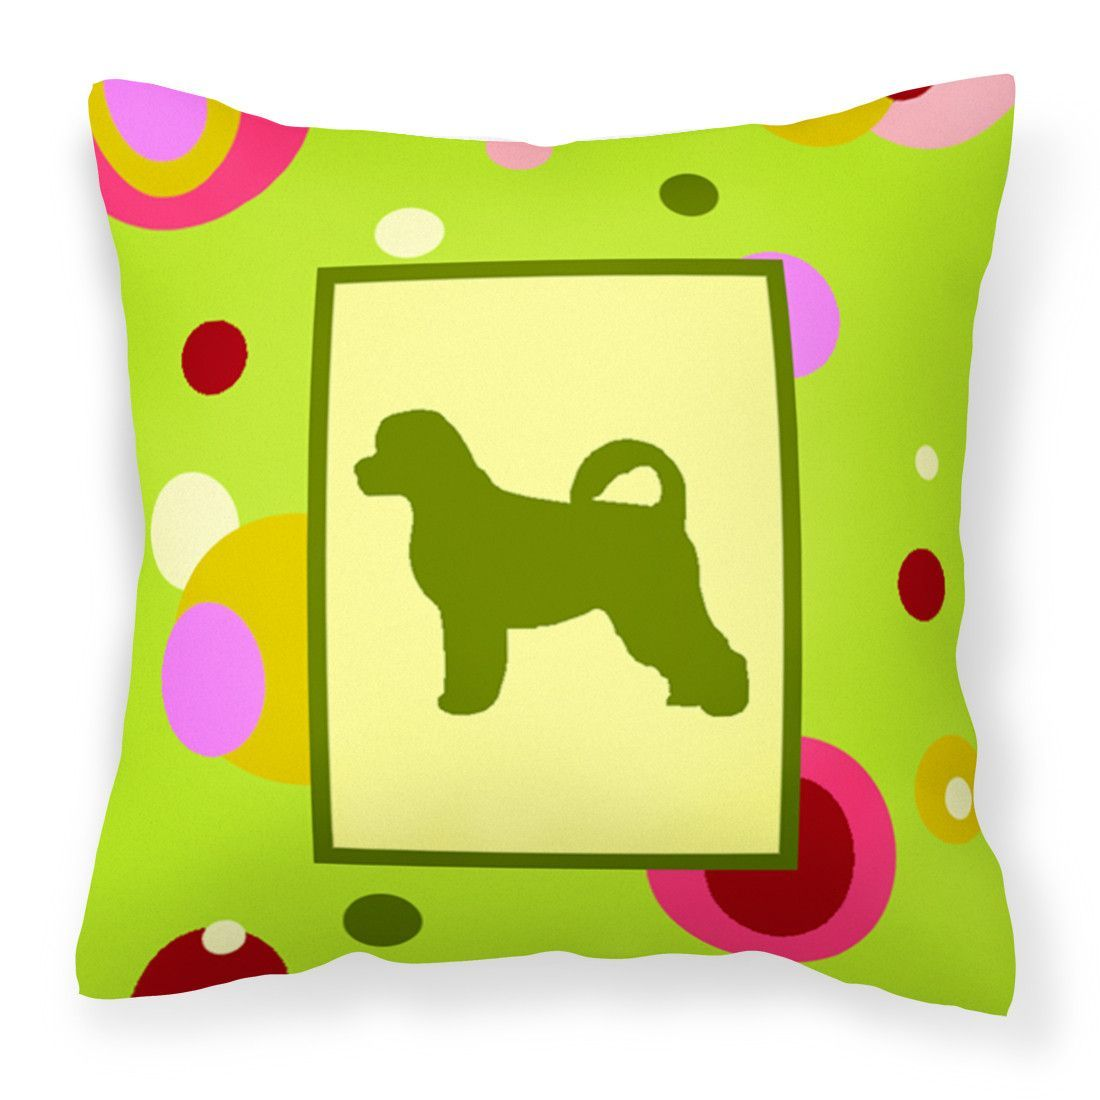 Lime Green Dots Portuguese Water Dog Fabric Decorative Pillow CK1090PW1414